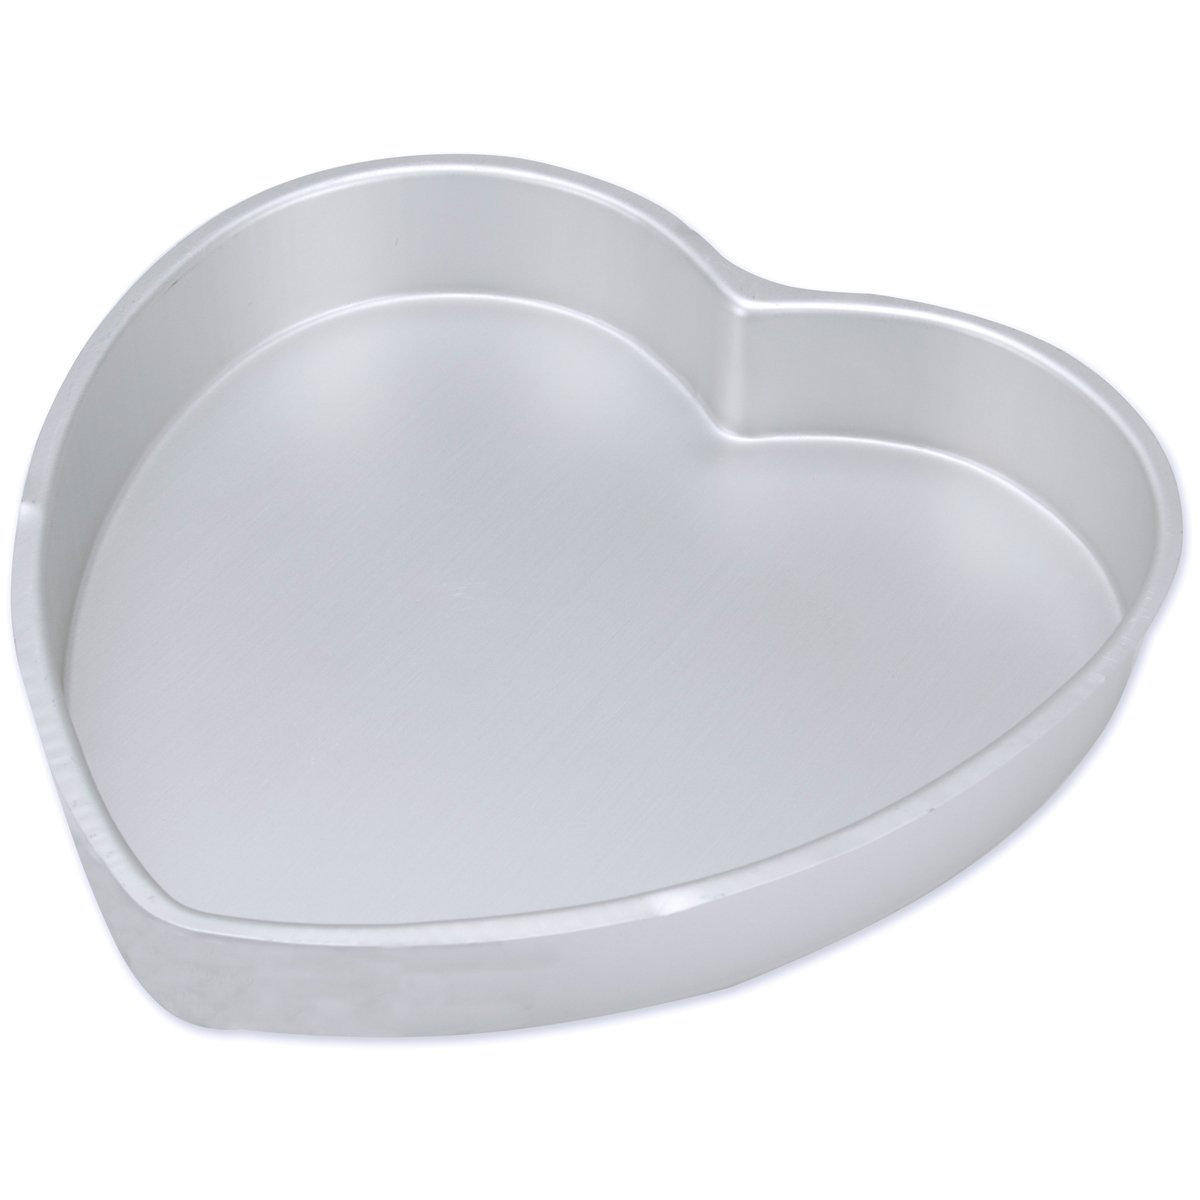 Wilton Decorative Preferred 6-Inch Heart Pan 2105-600